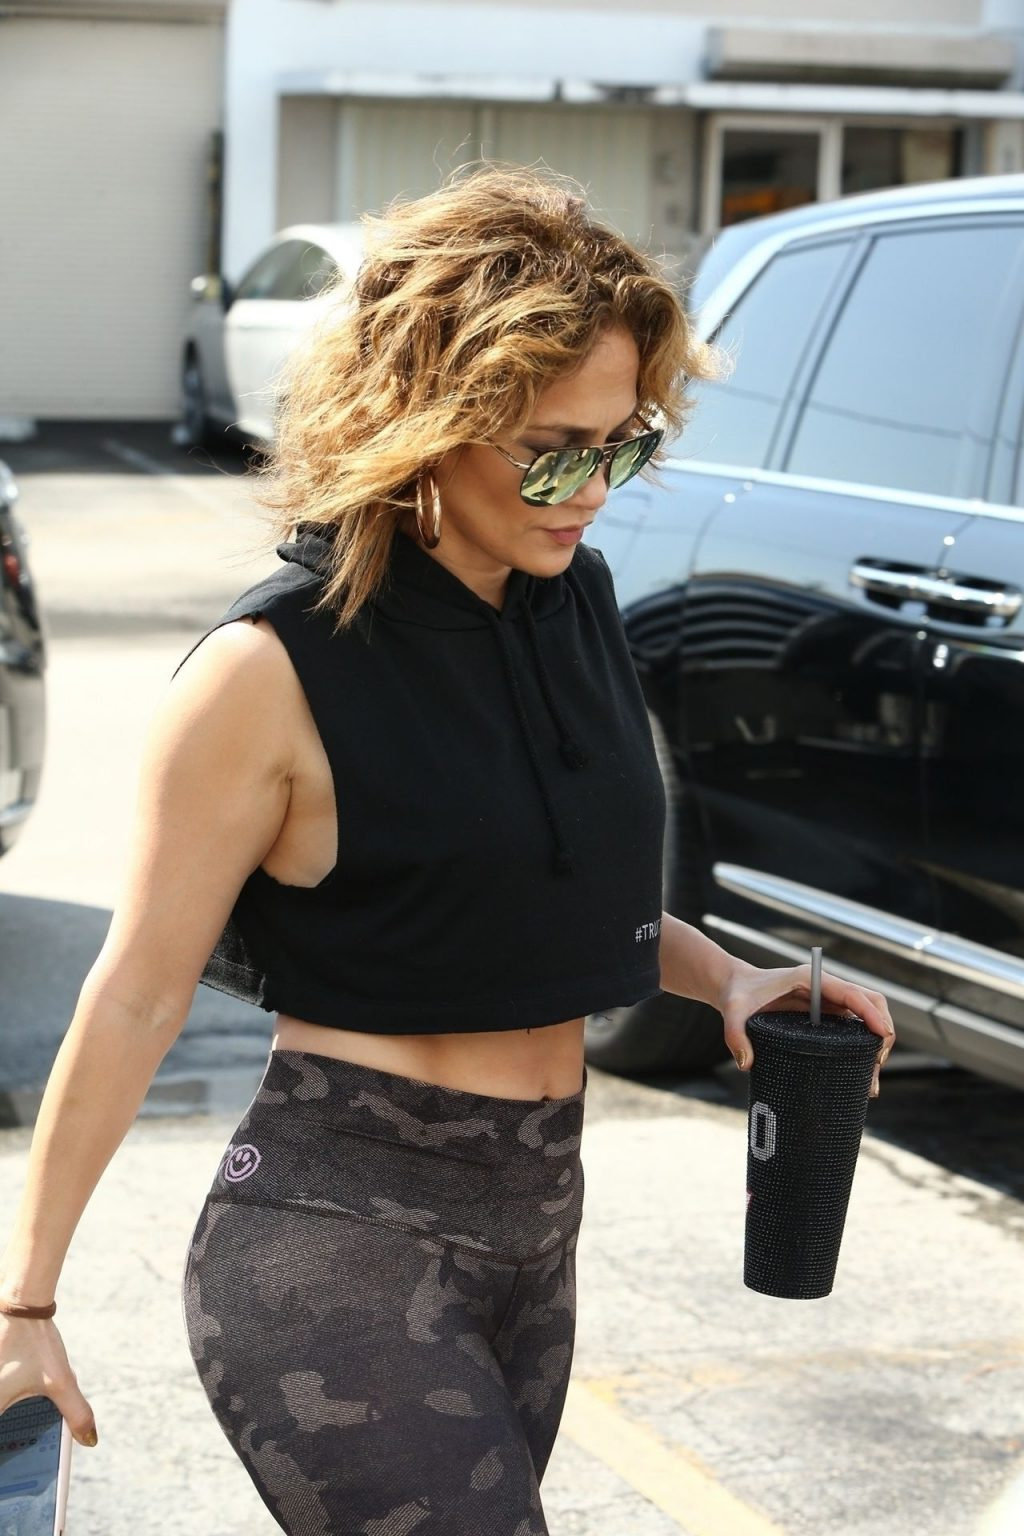 Jennifer Lopez Sexy The Fappening Blog 28 1024x1536 - Jennifer Lopez Shows That Rock Hard Abs Don't Just Happen as She Dutifully Hits the Gym in Miami (48 Photos)